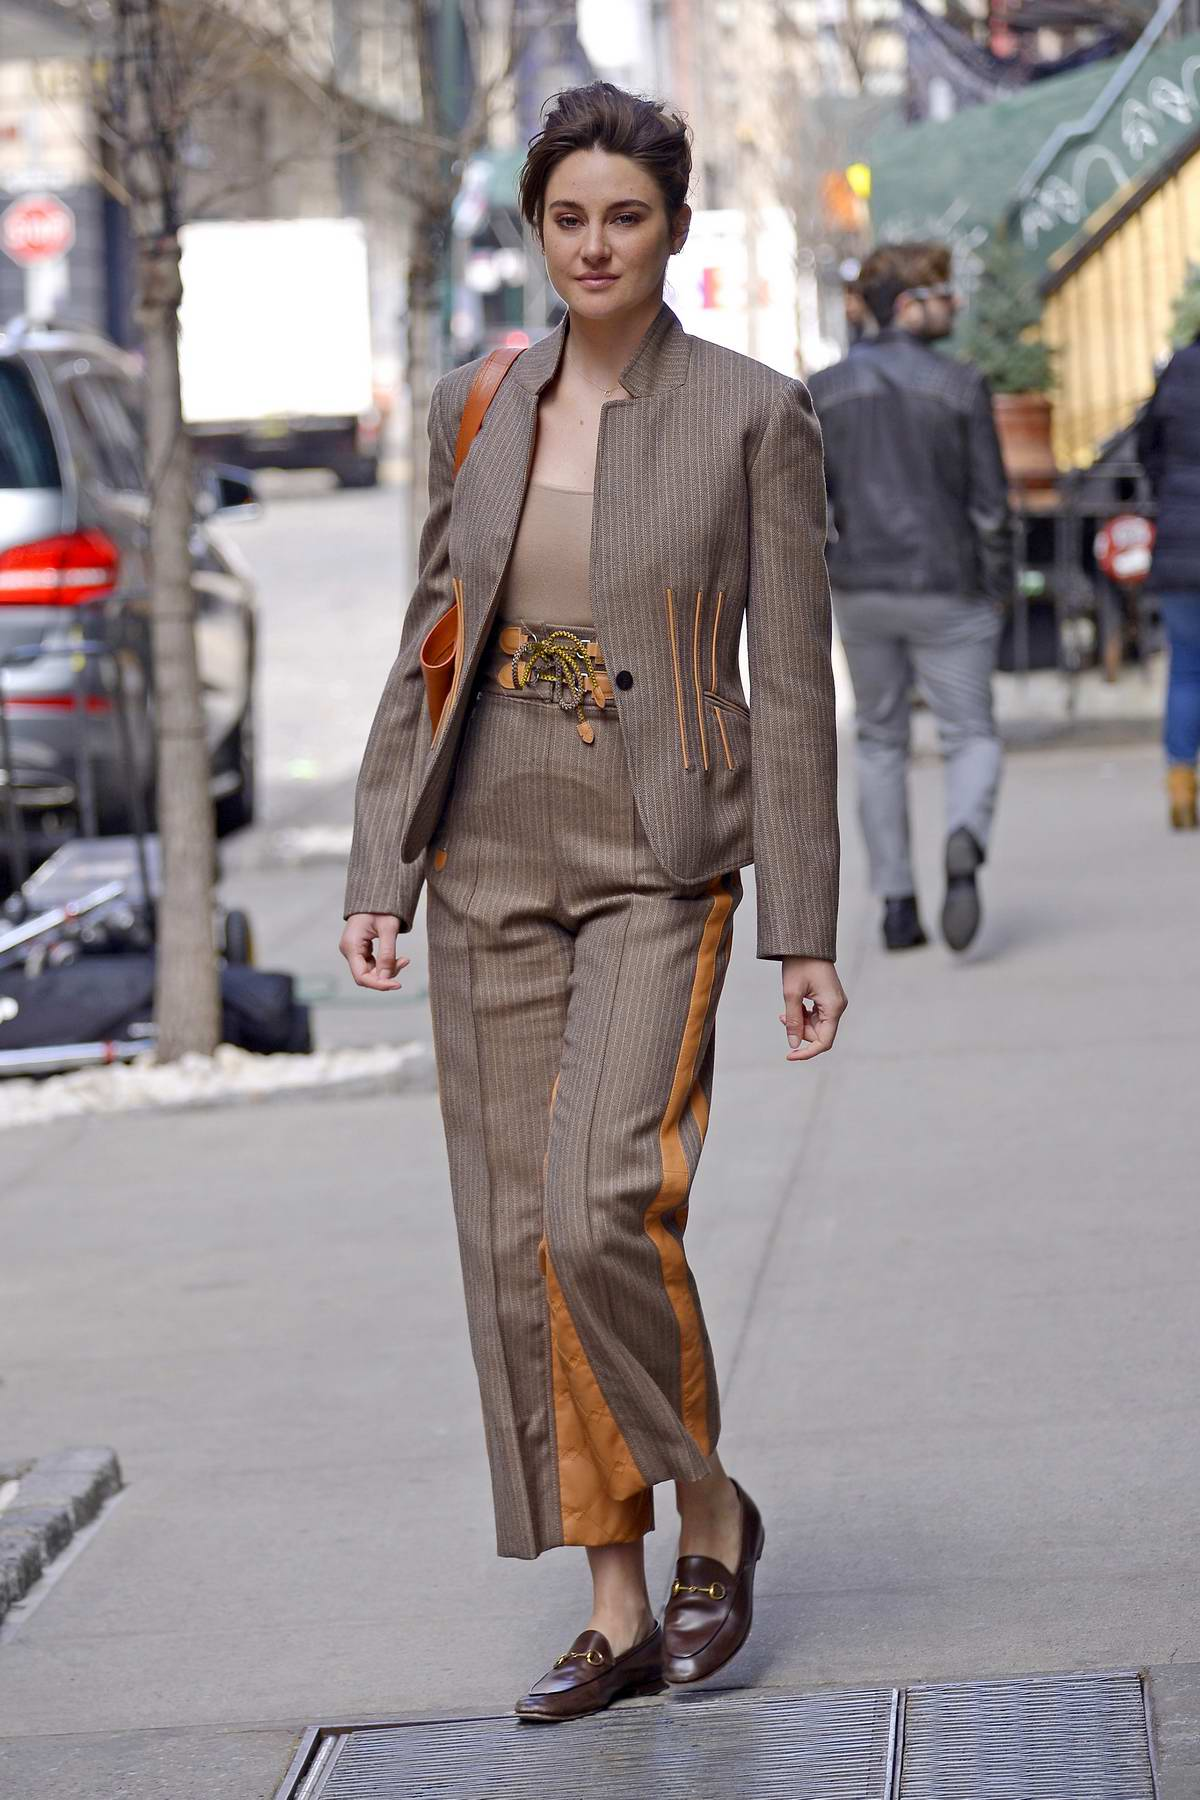 Shailene Woodley looks stylish in brown and orange pantsuit while out and about in New York City